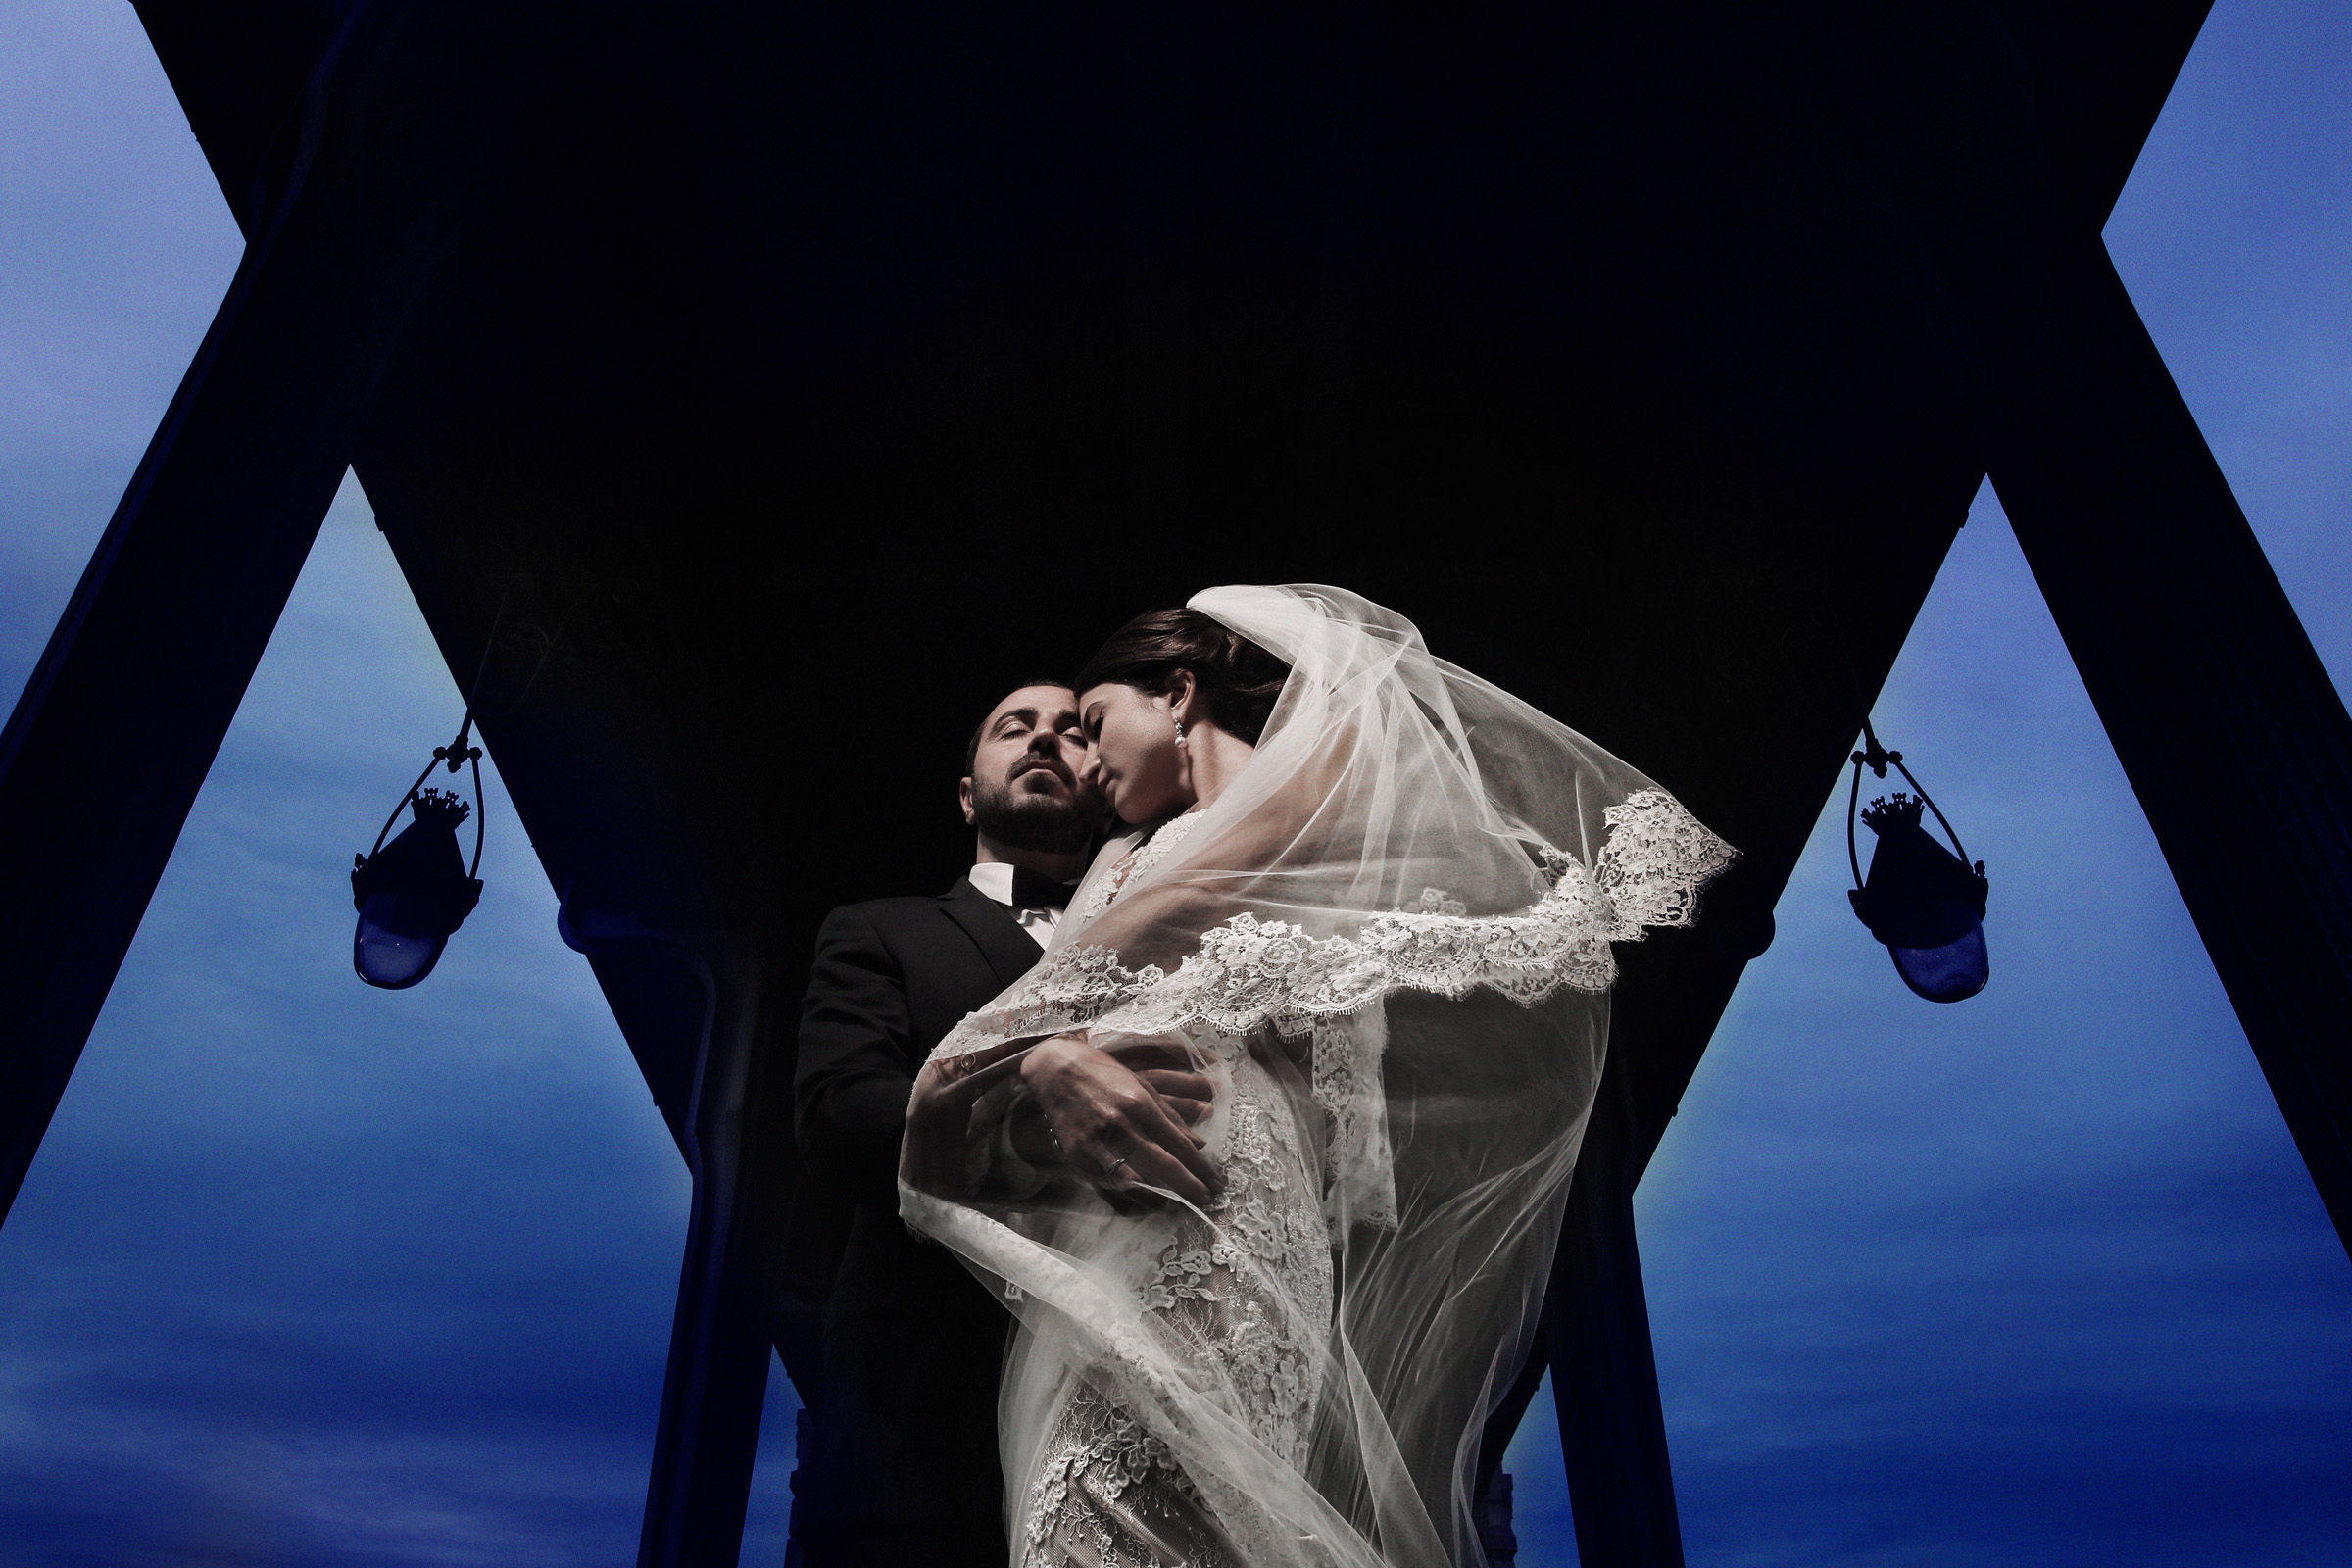 Dramatic portrait of bride and groom, by Franck Boutonnet